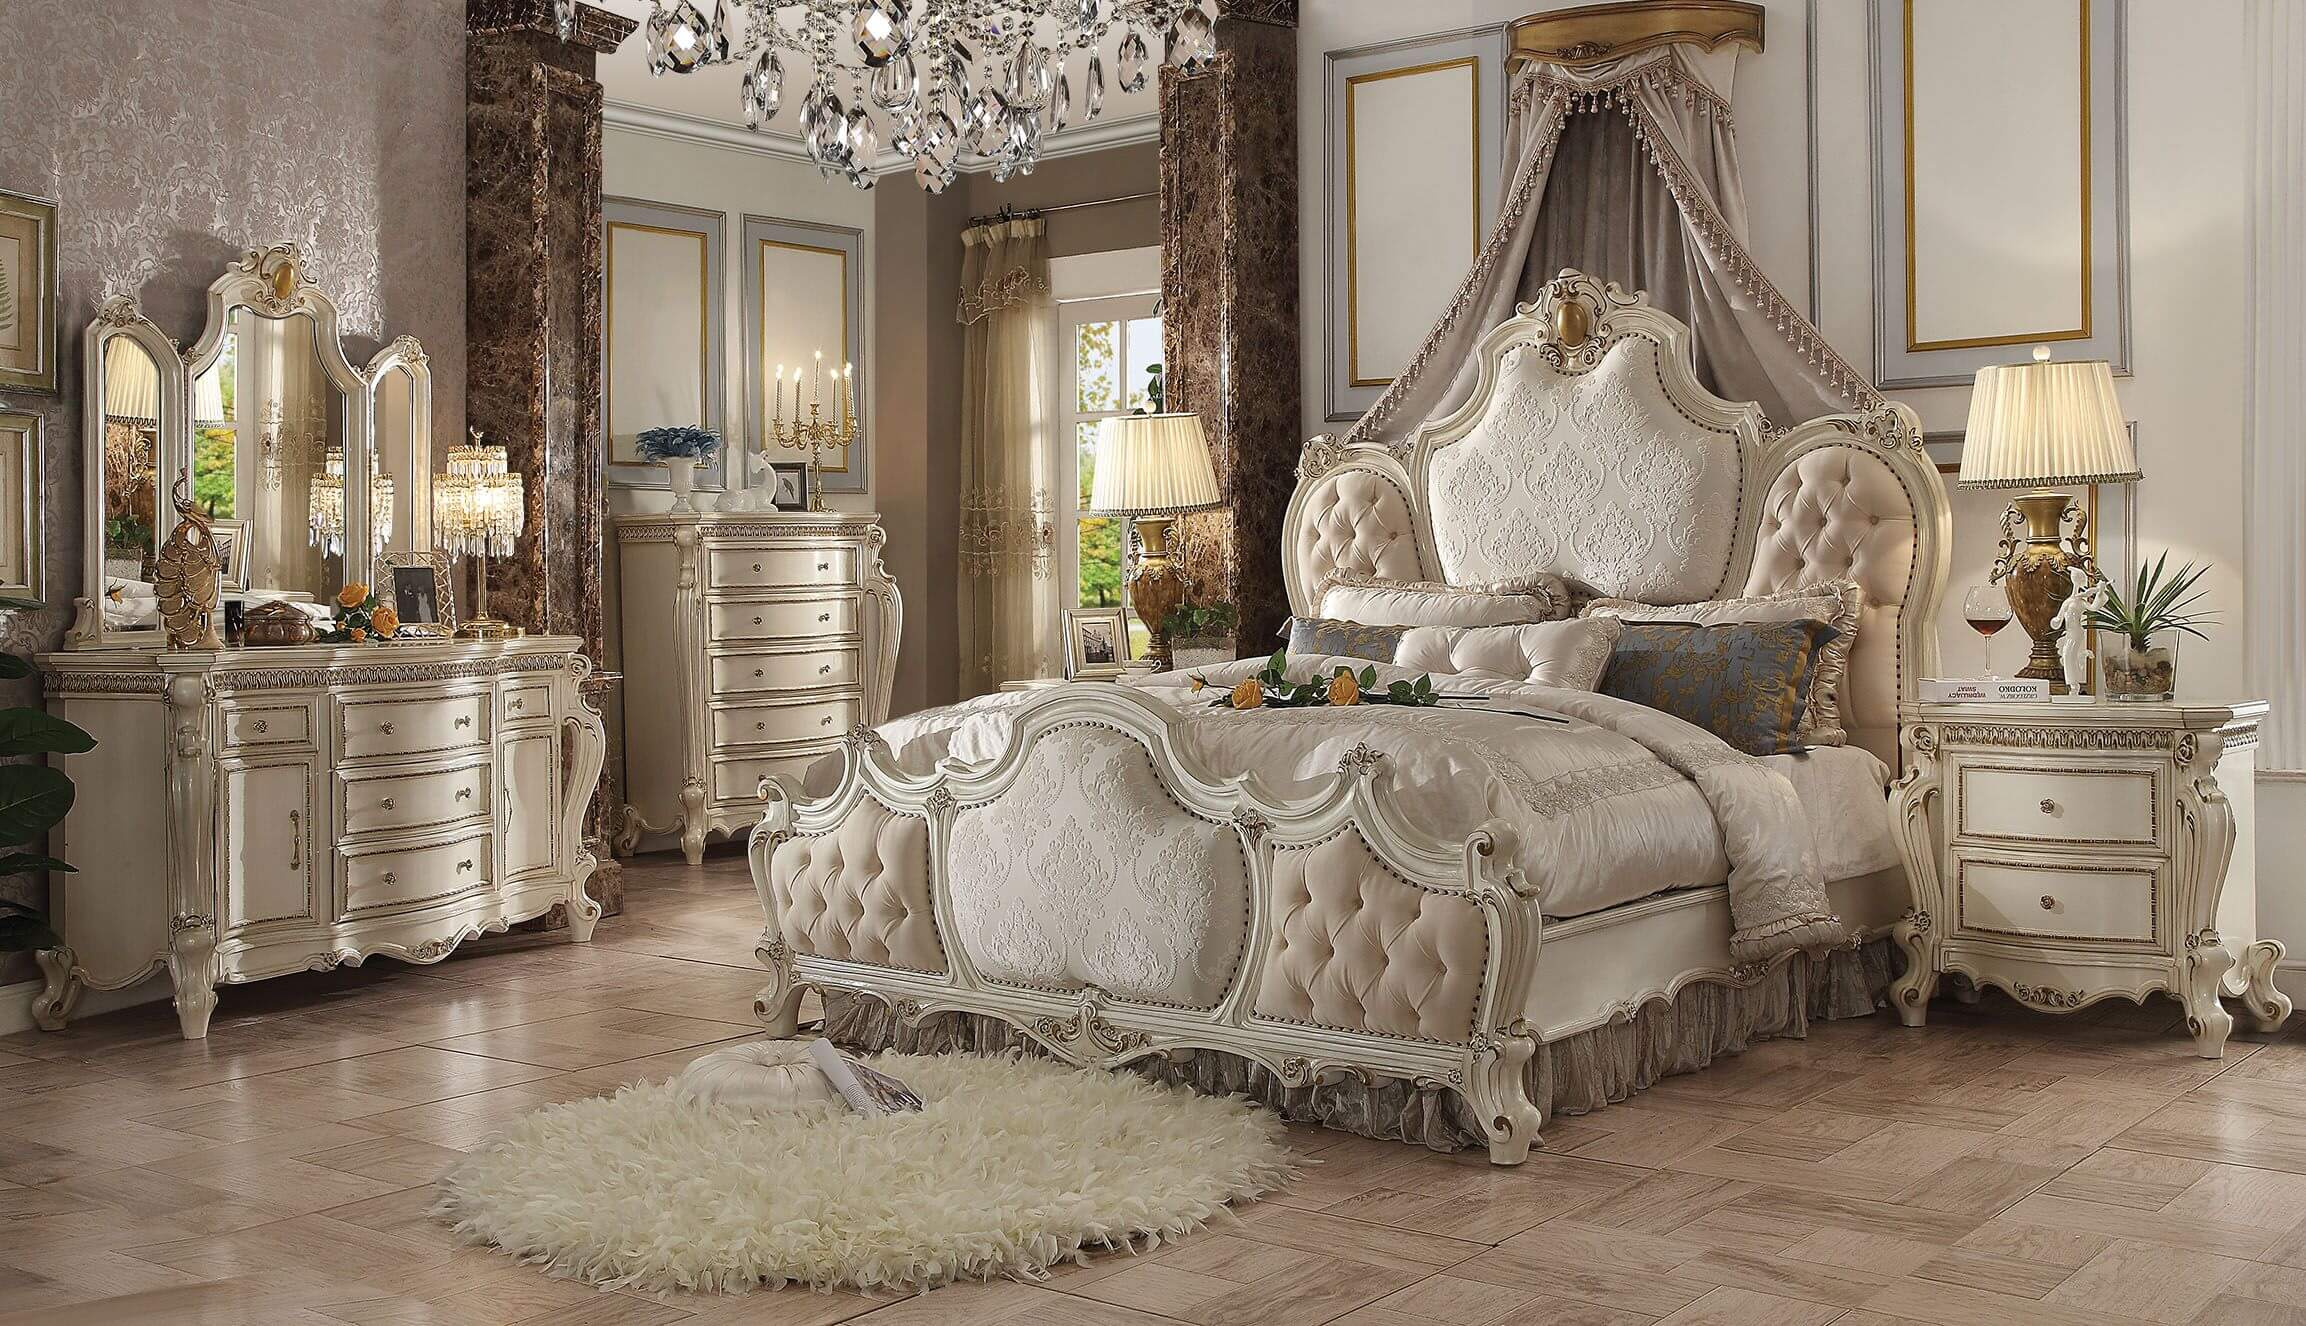 4 Piece Picardy Antique Pearl Bedroom Set ACME-26880Q • USA ...